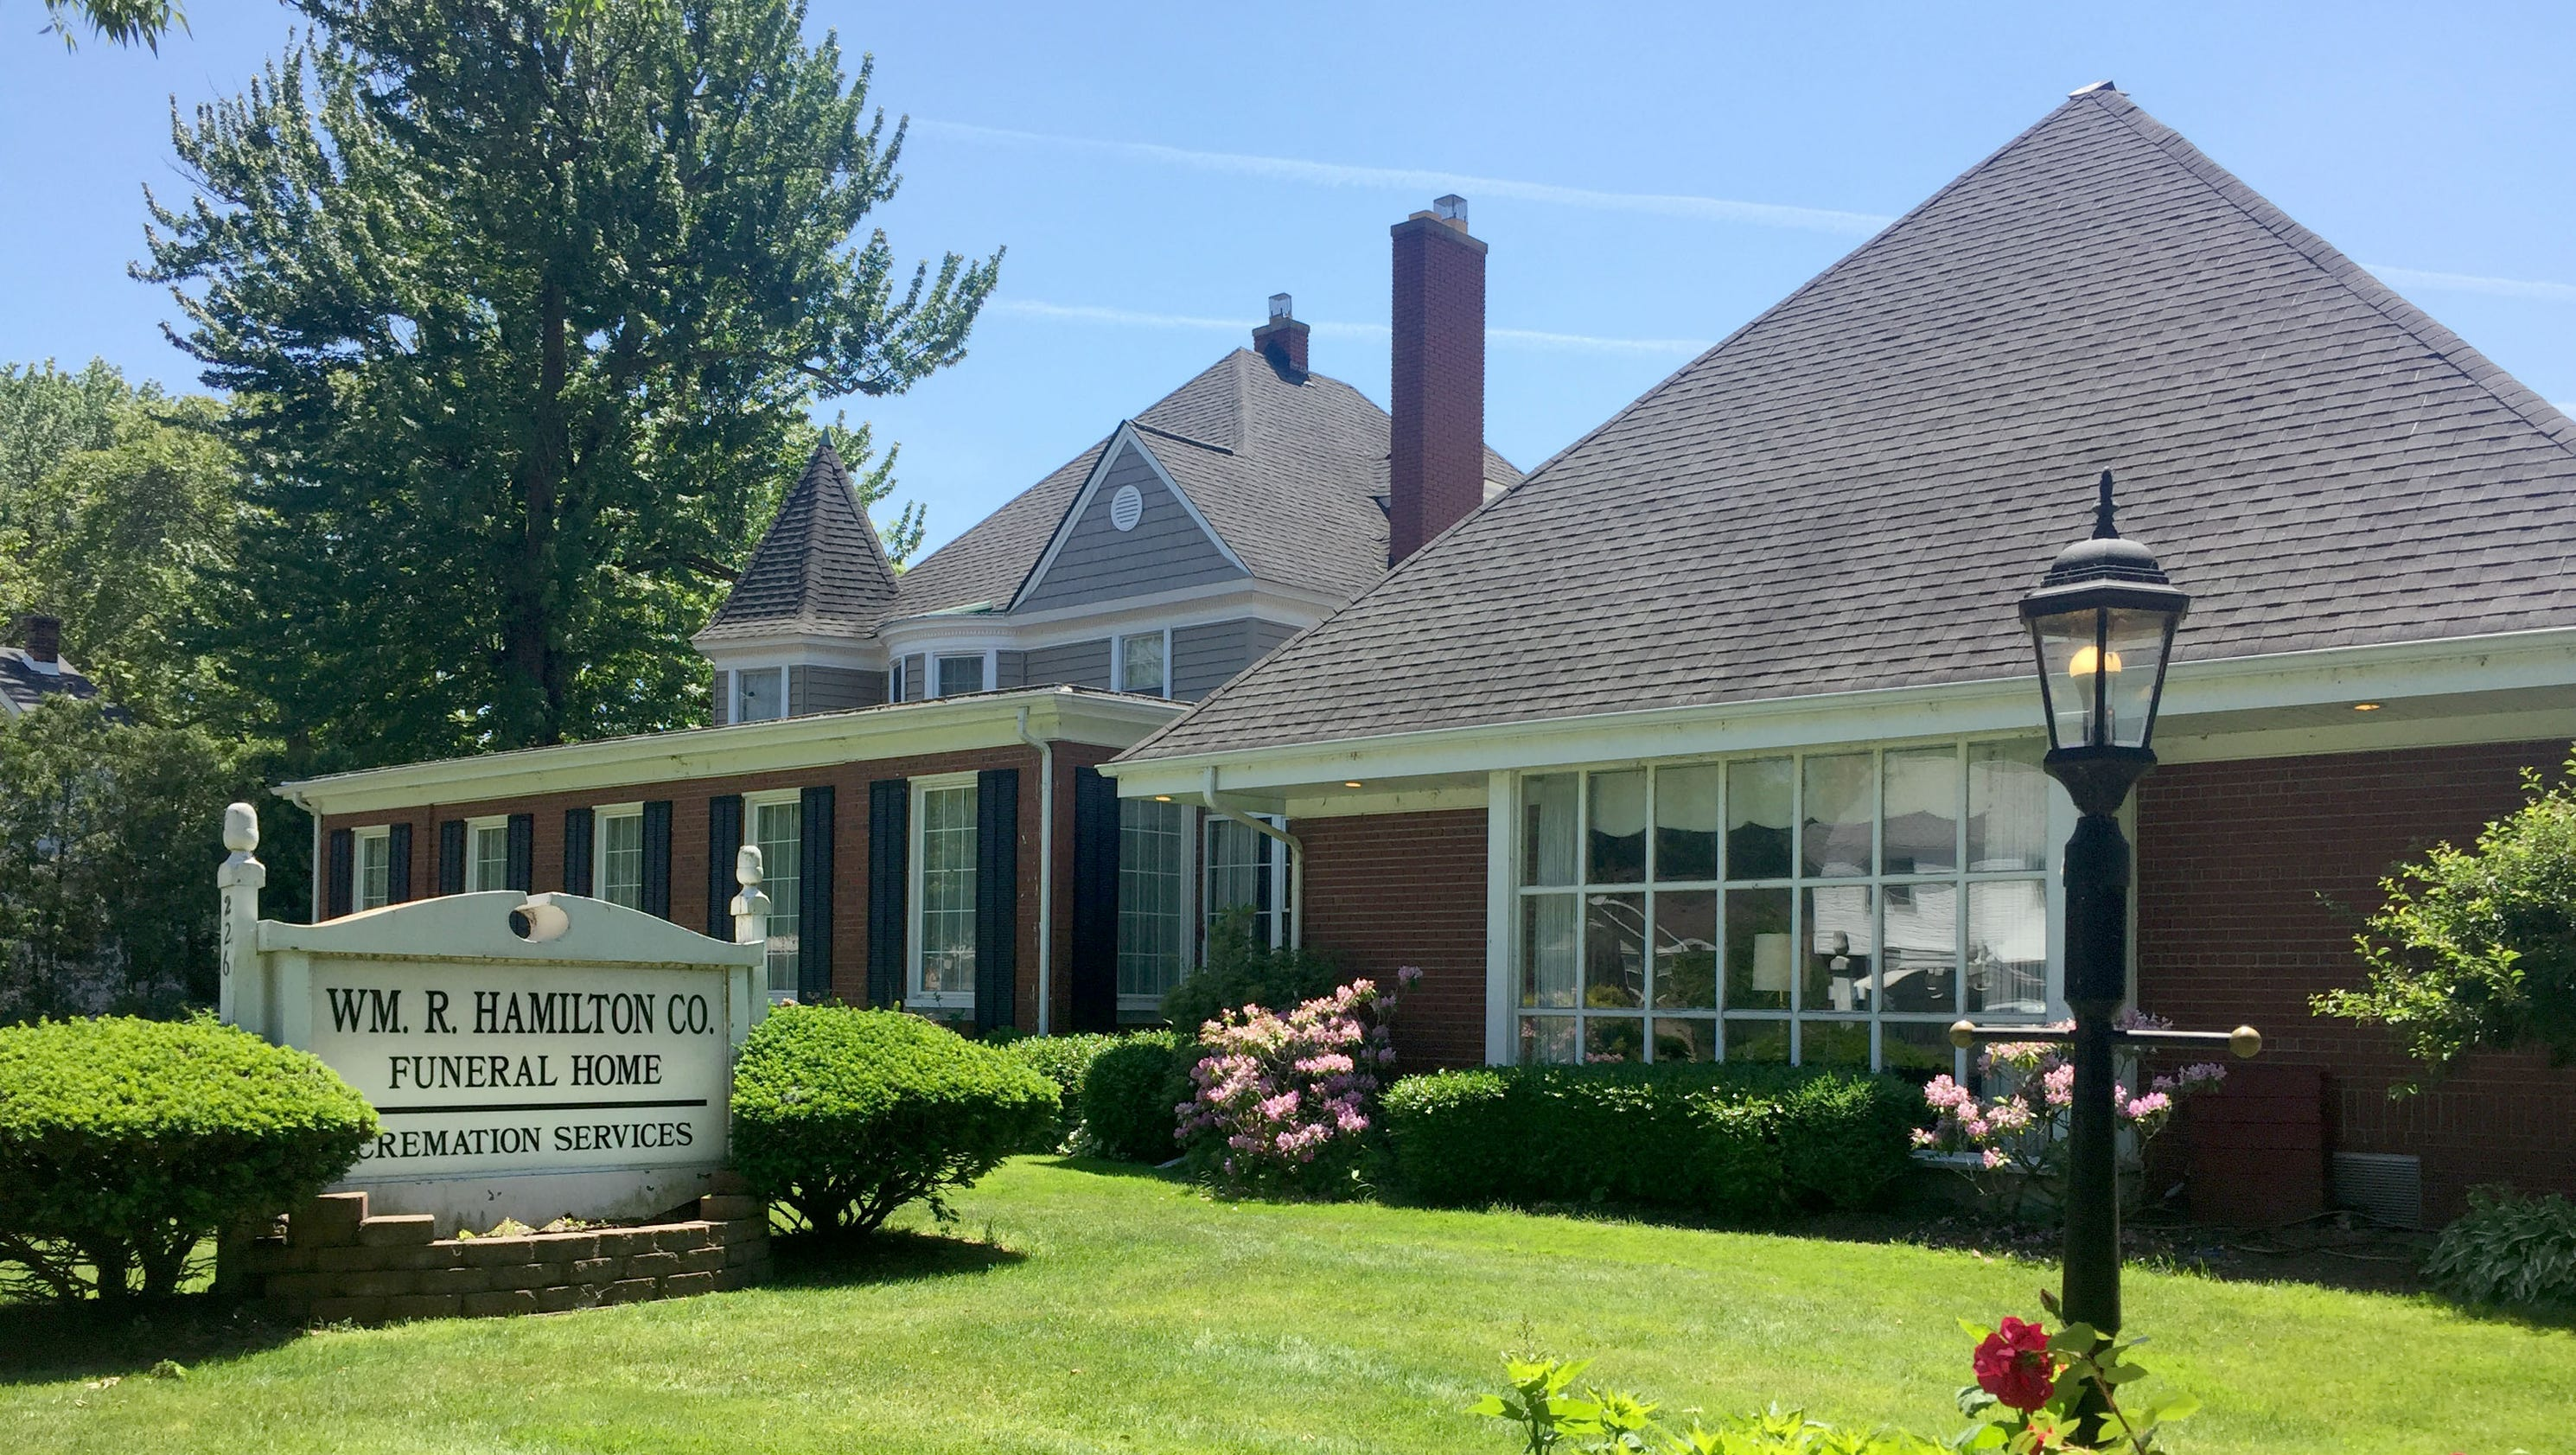 State suspends licenses of Mt Clemens funeral home manager